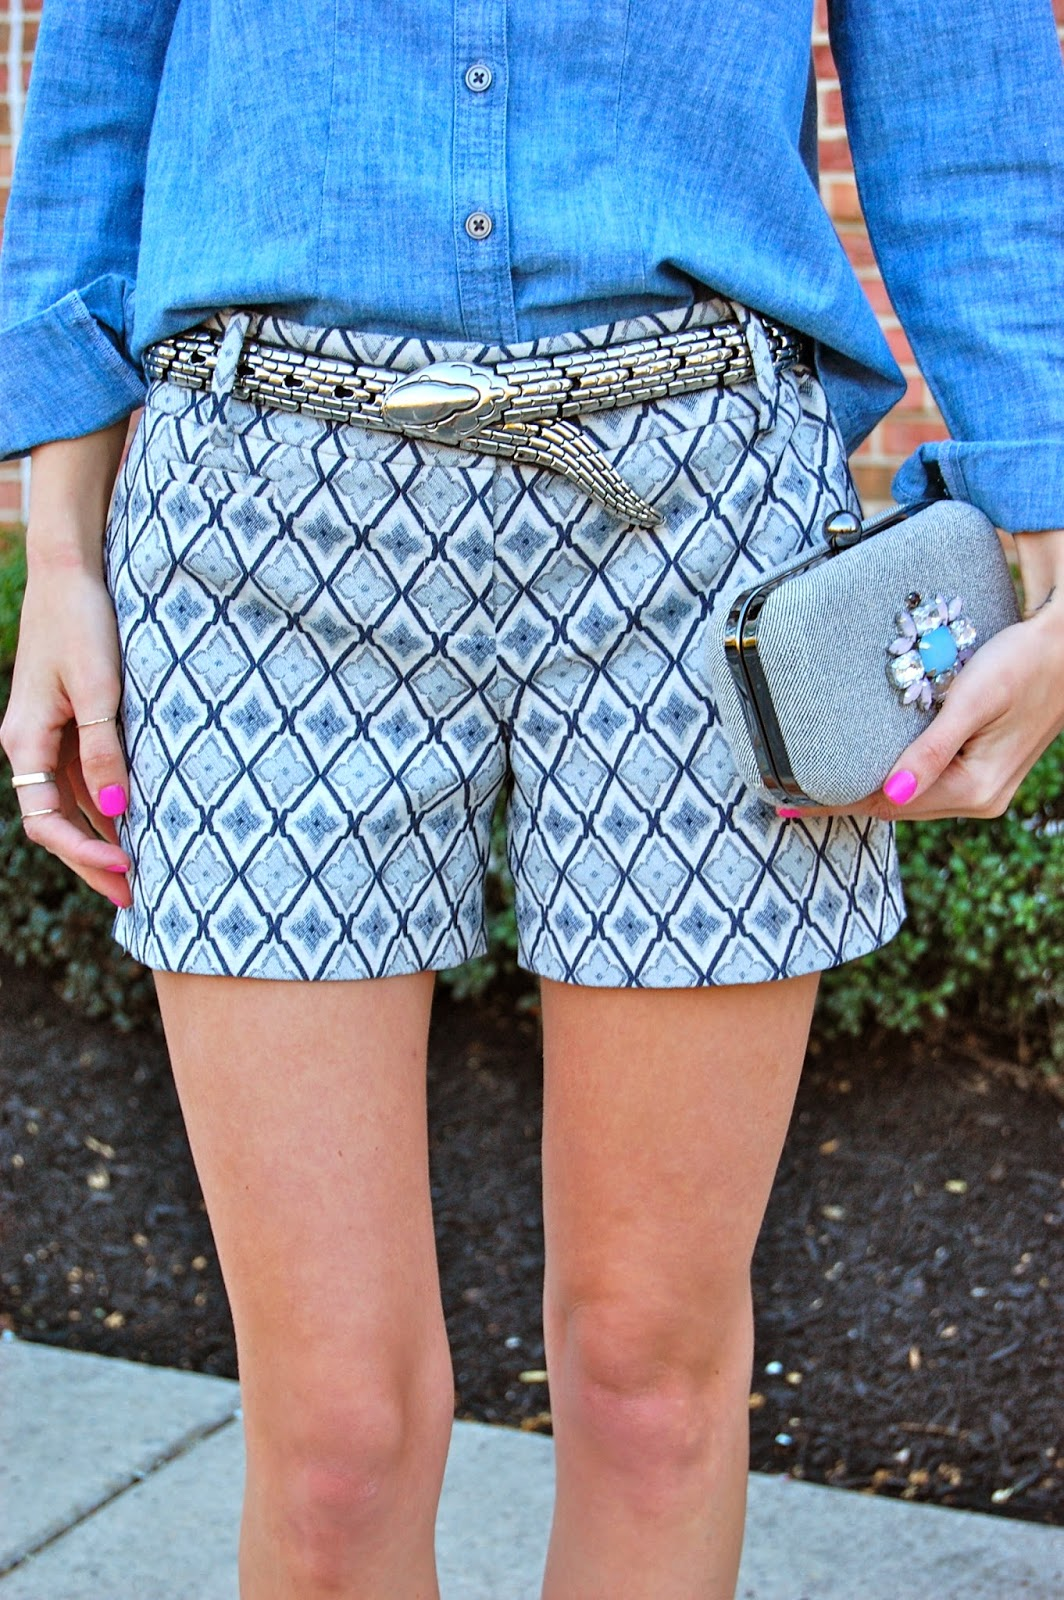 Wearing Loft tile jacquard shorts, a vintage silver snake belt and Loft chambray shirt